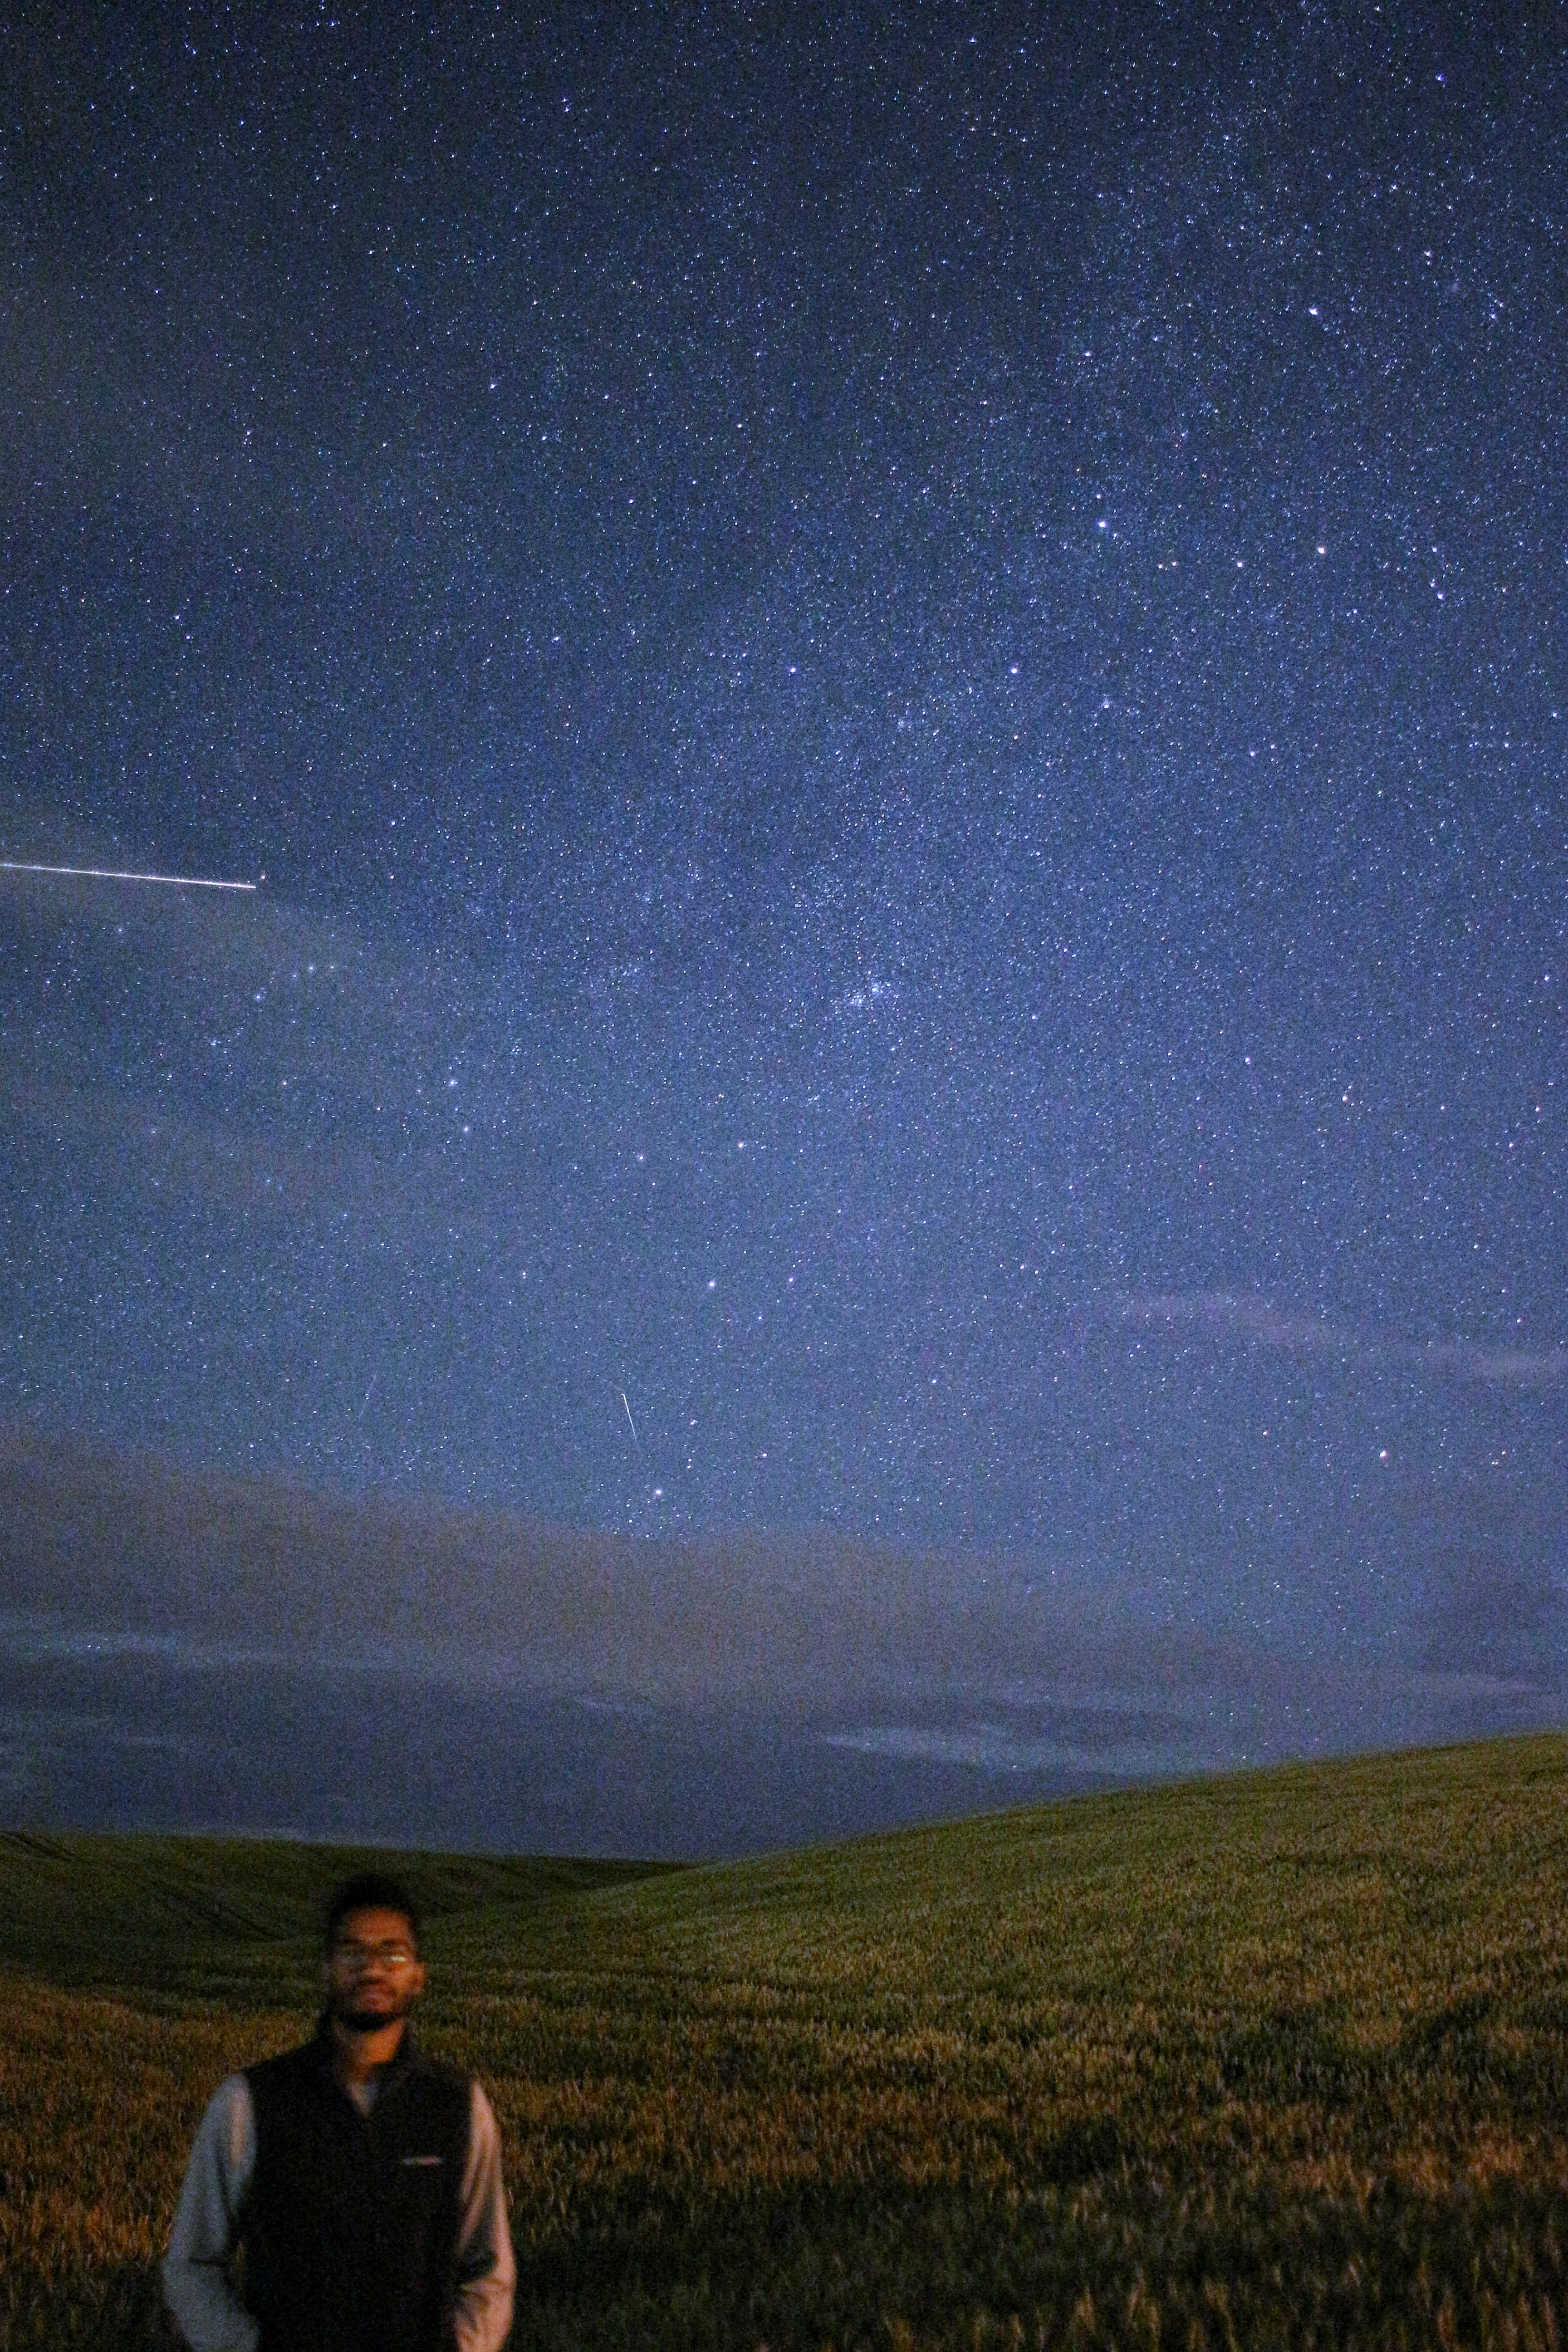 man standing on meadows under starry sky